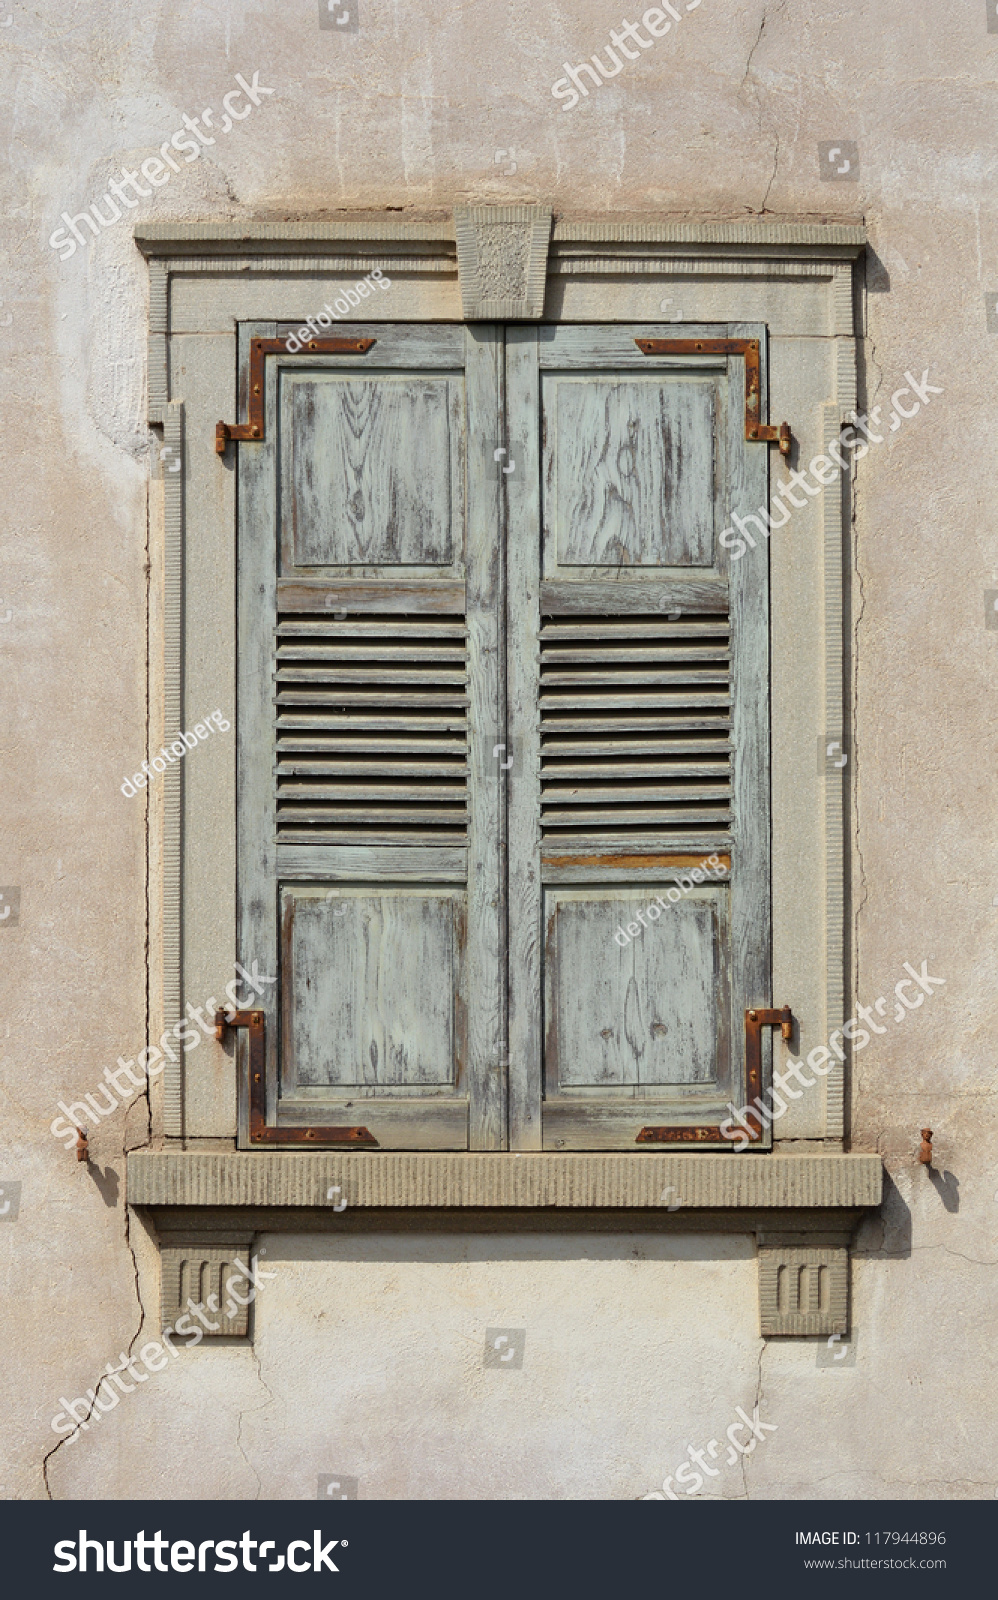 Wood Shutters Closed : Wooden window shutters closed old shuttered weathered